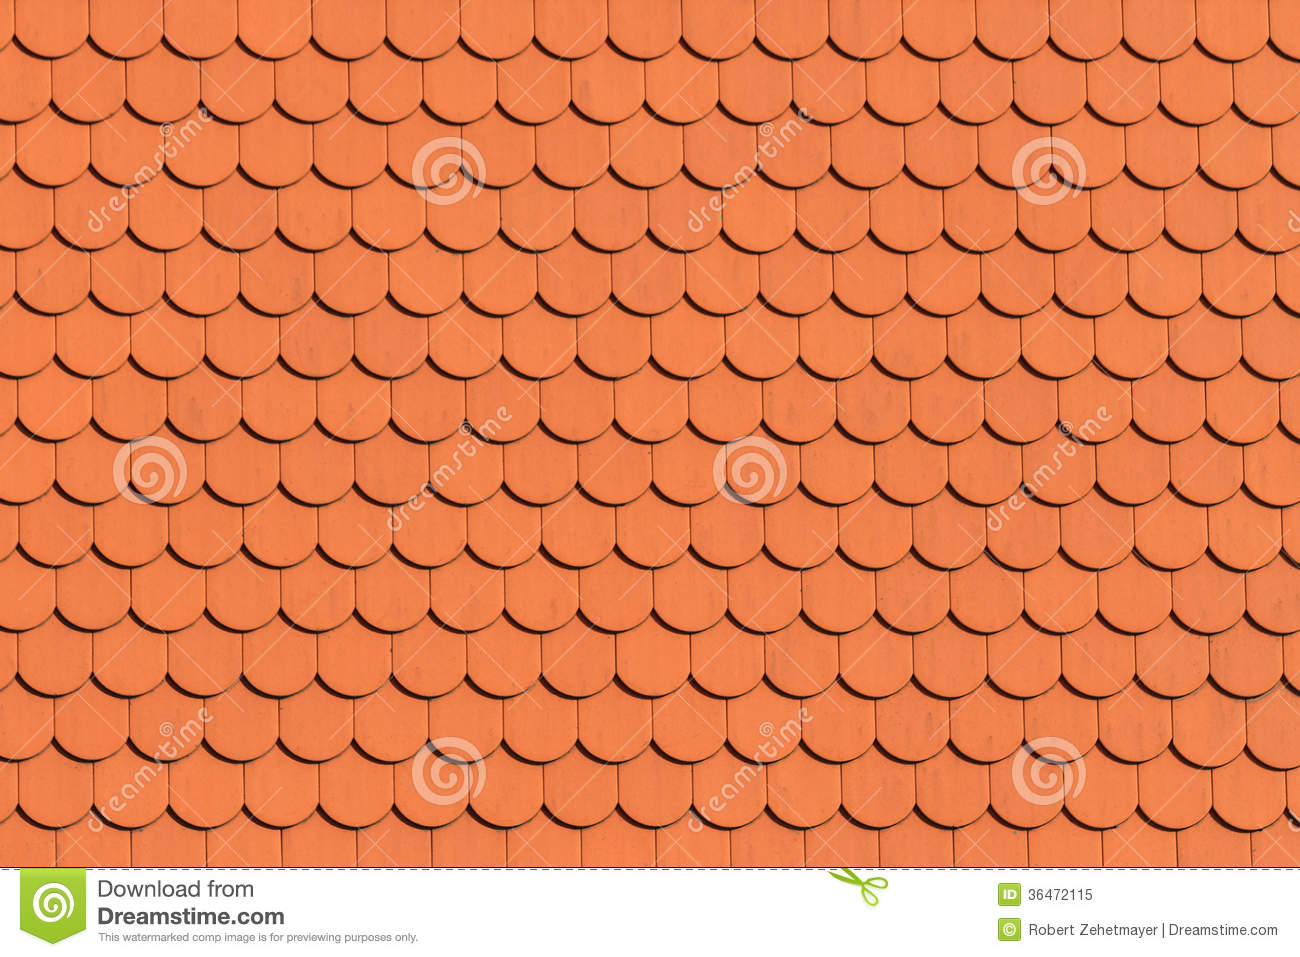 Red roof tile pattern royalty free stock photo image for Roof tile patterns